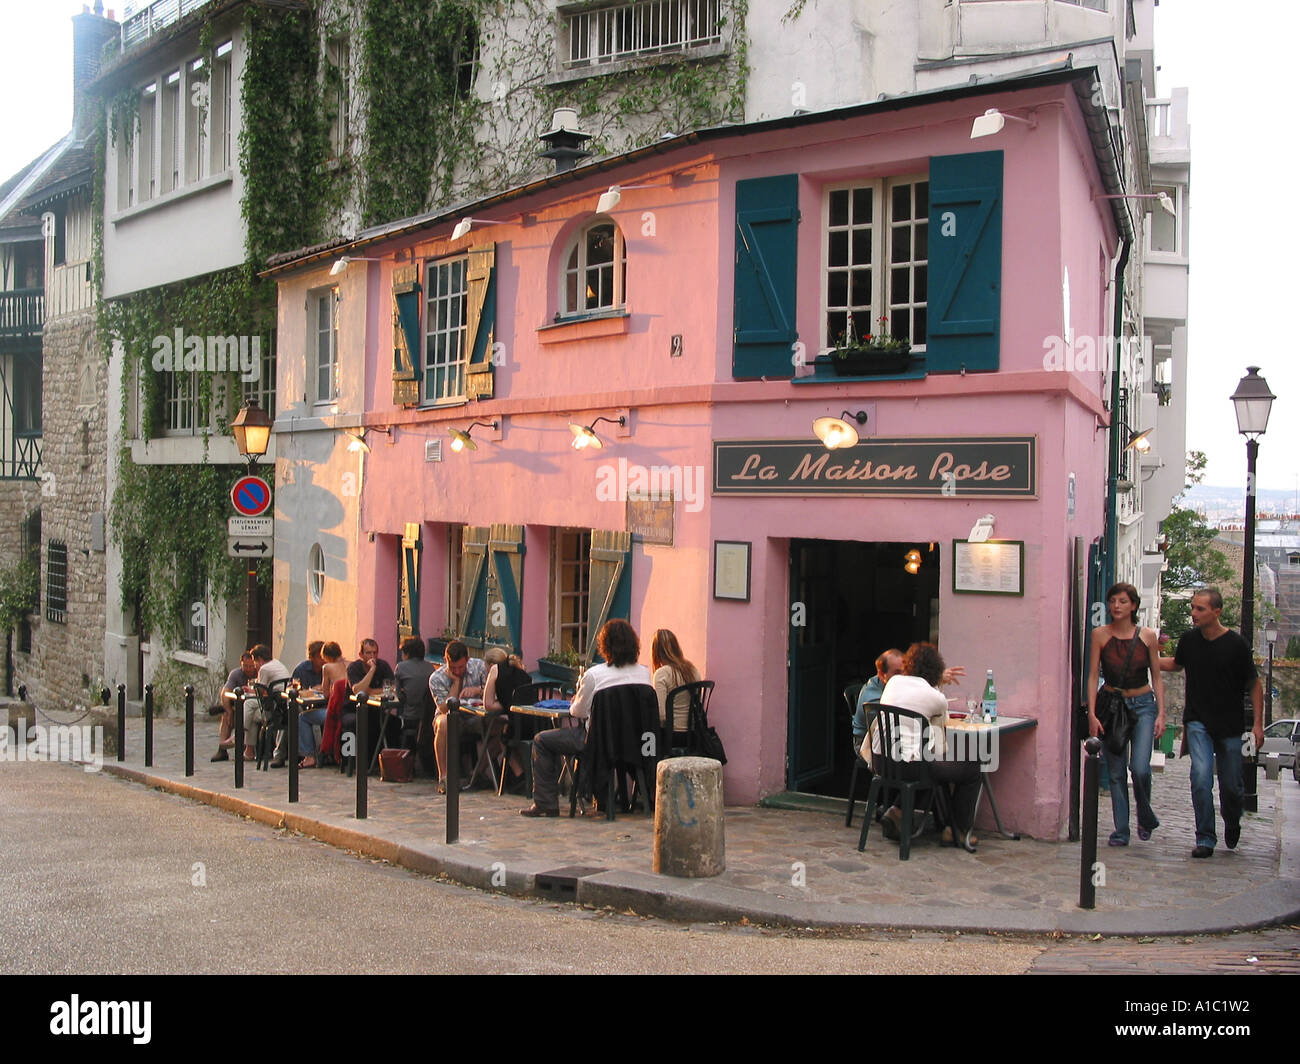 street view of la maison rose parisian restaurant montmartre paris stock photo 5835089 alamy. Black Bedroom Furniture Sets. Home Design Ideas